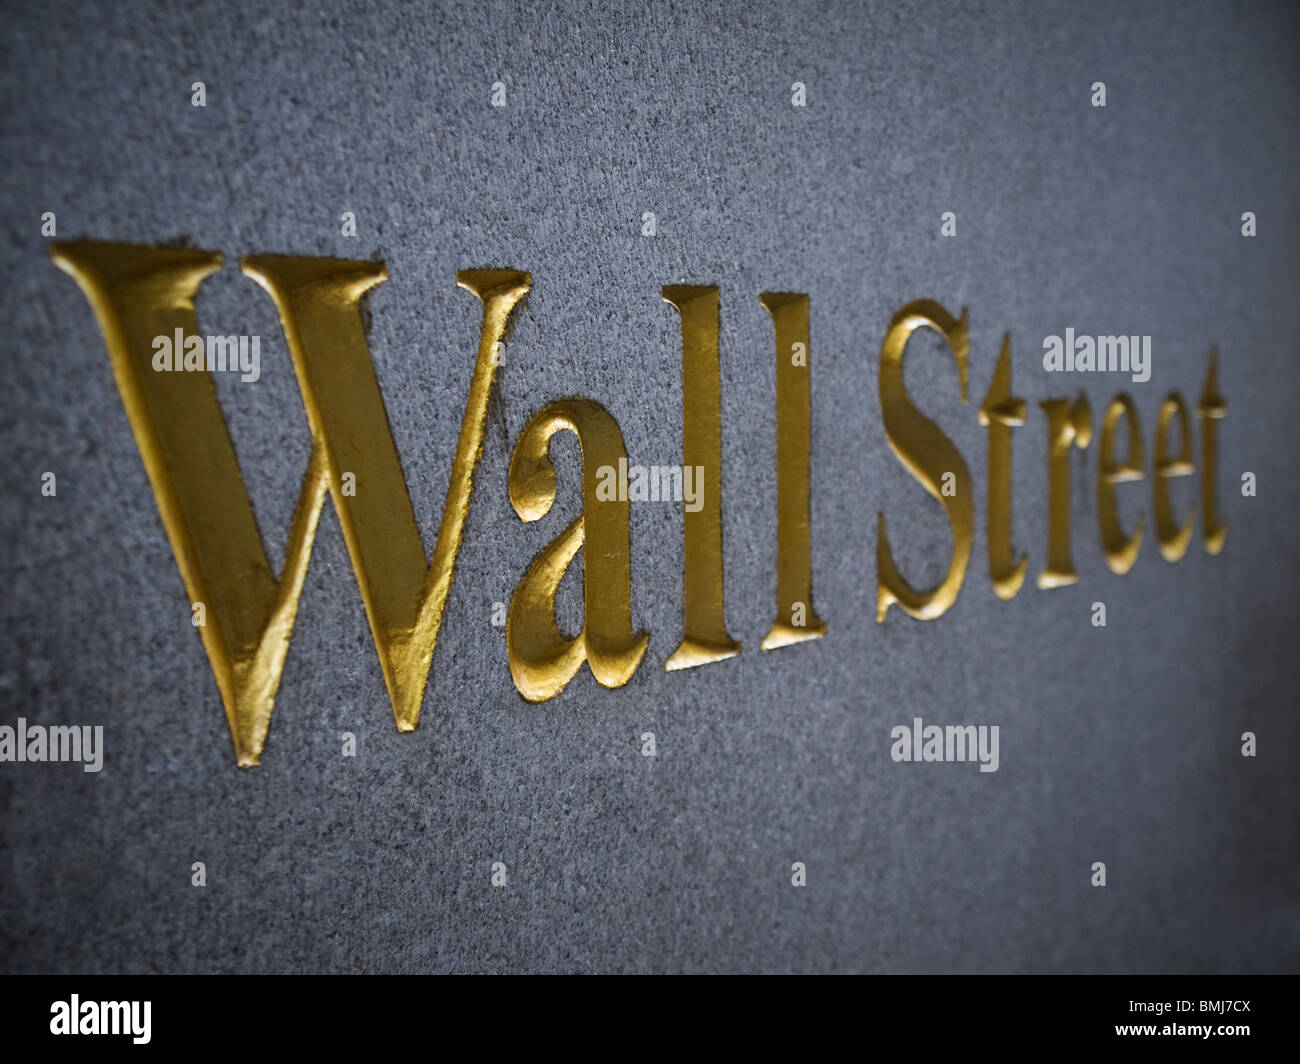 Wall Street carved in stone with golden letters. - Stock Image